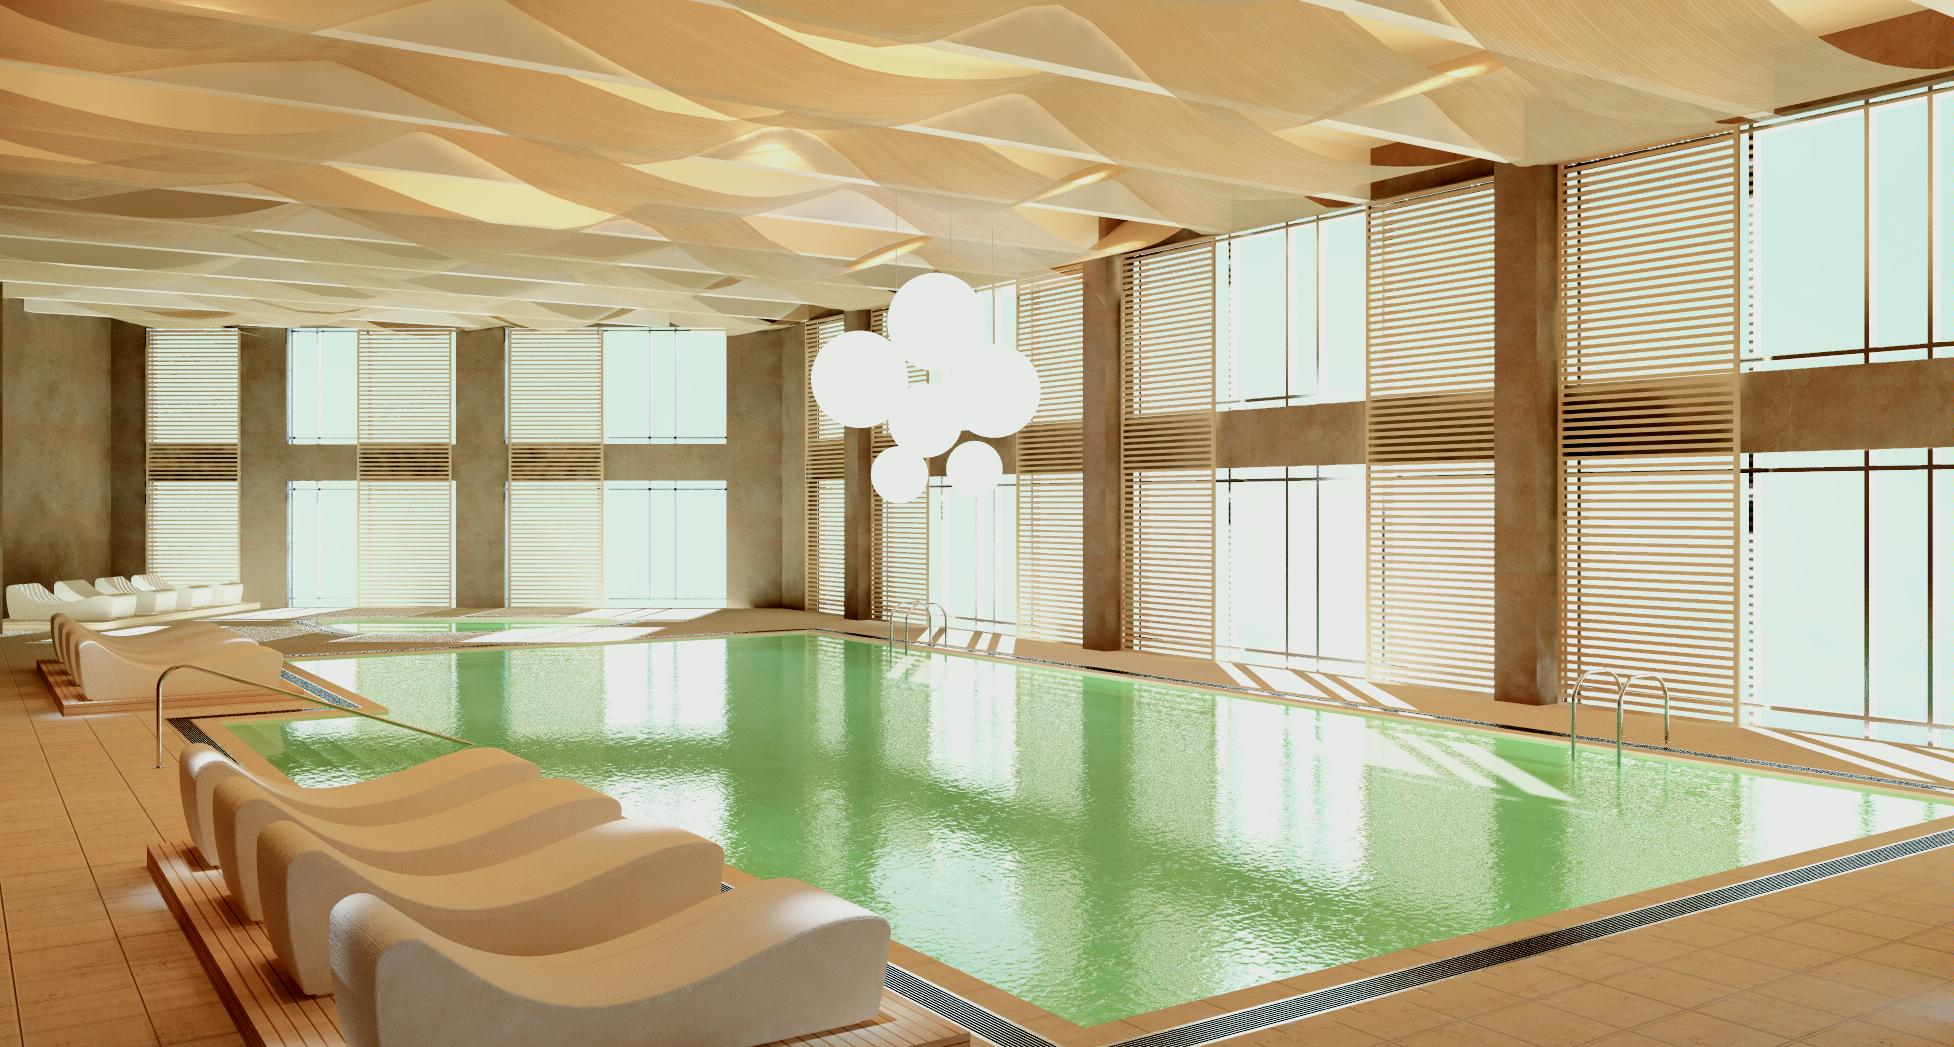 Wellness is part of World Class Strogino's offering